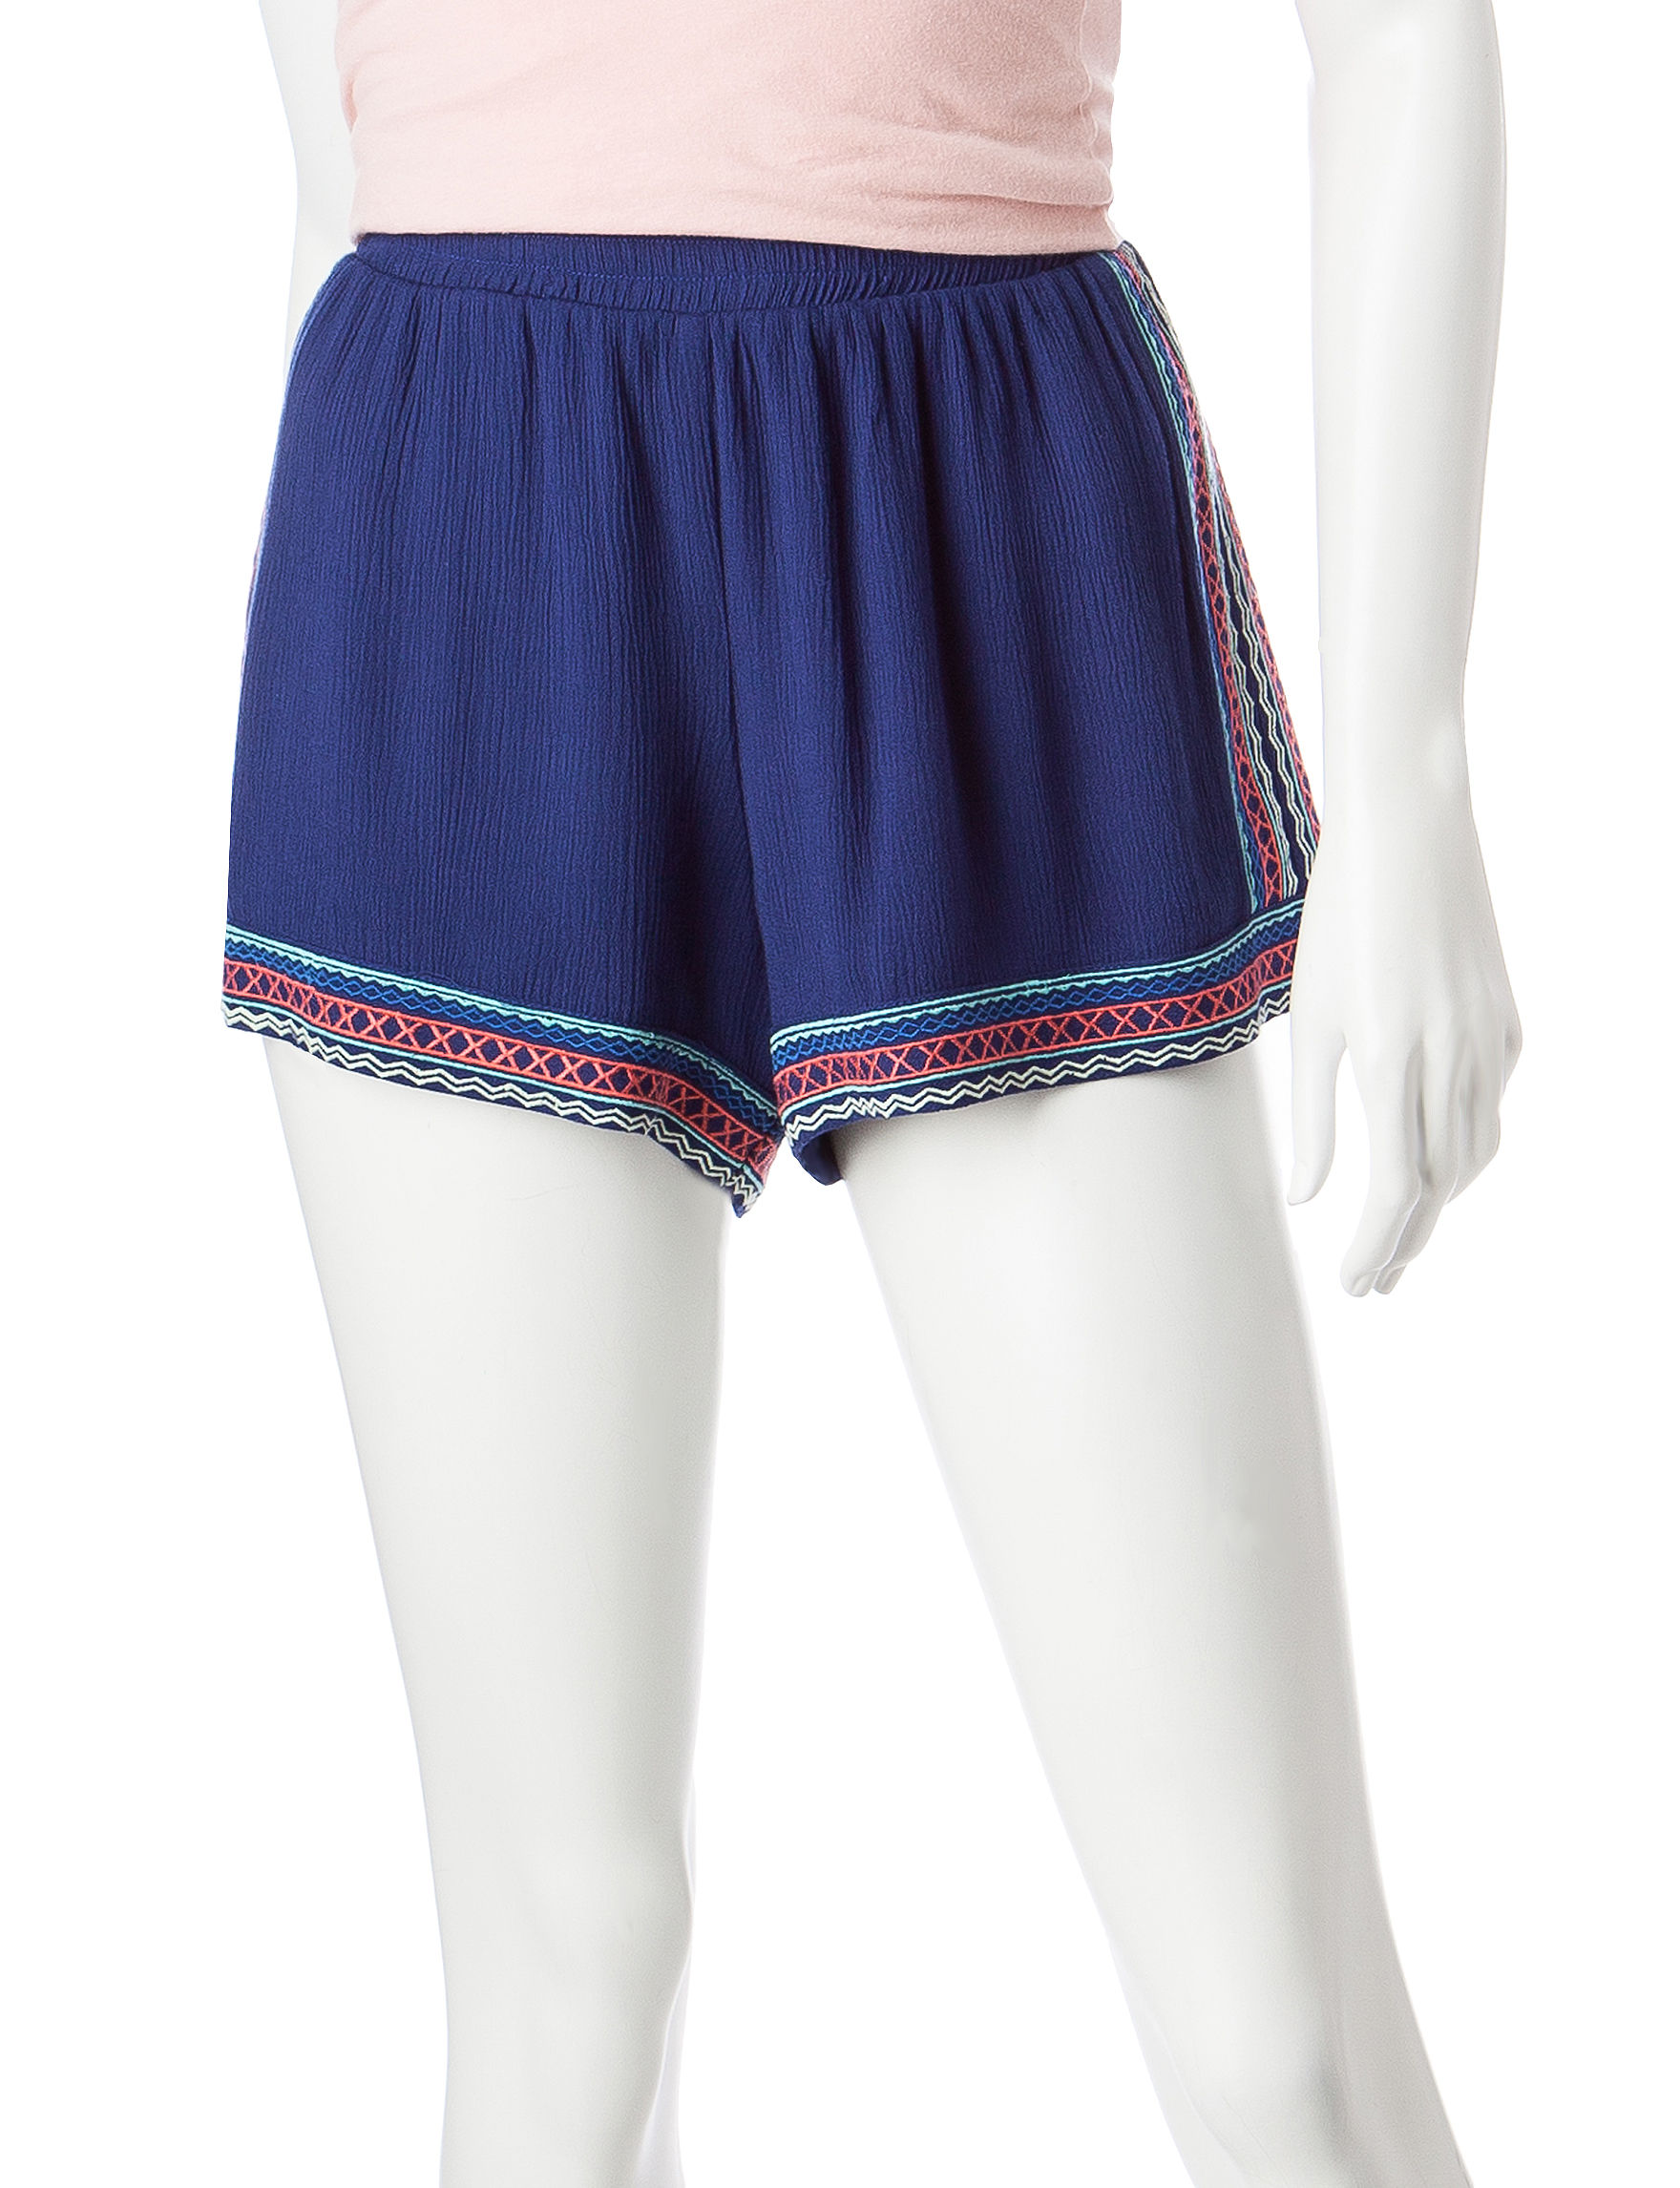 Justify Blue Soft Shorts